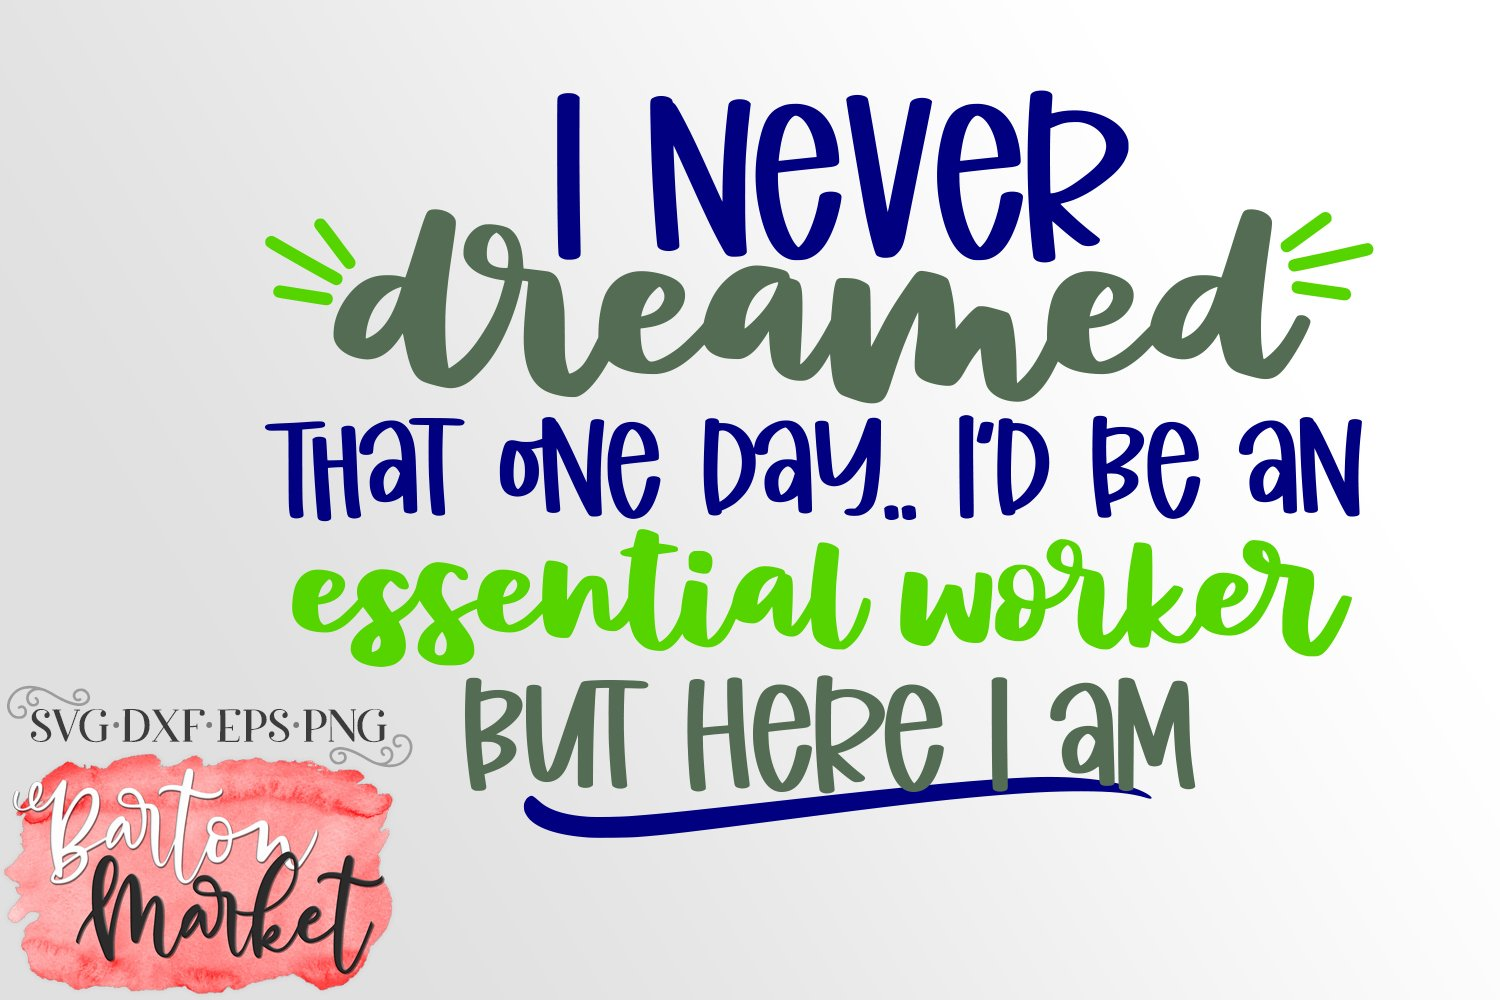 I Never Dreamed I'd Be An Essential Worker SVG DXF EPS PNG example image 2